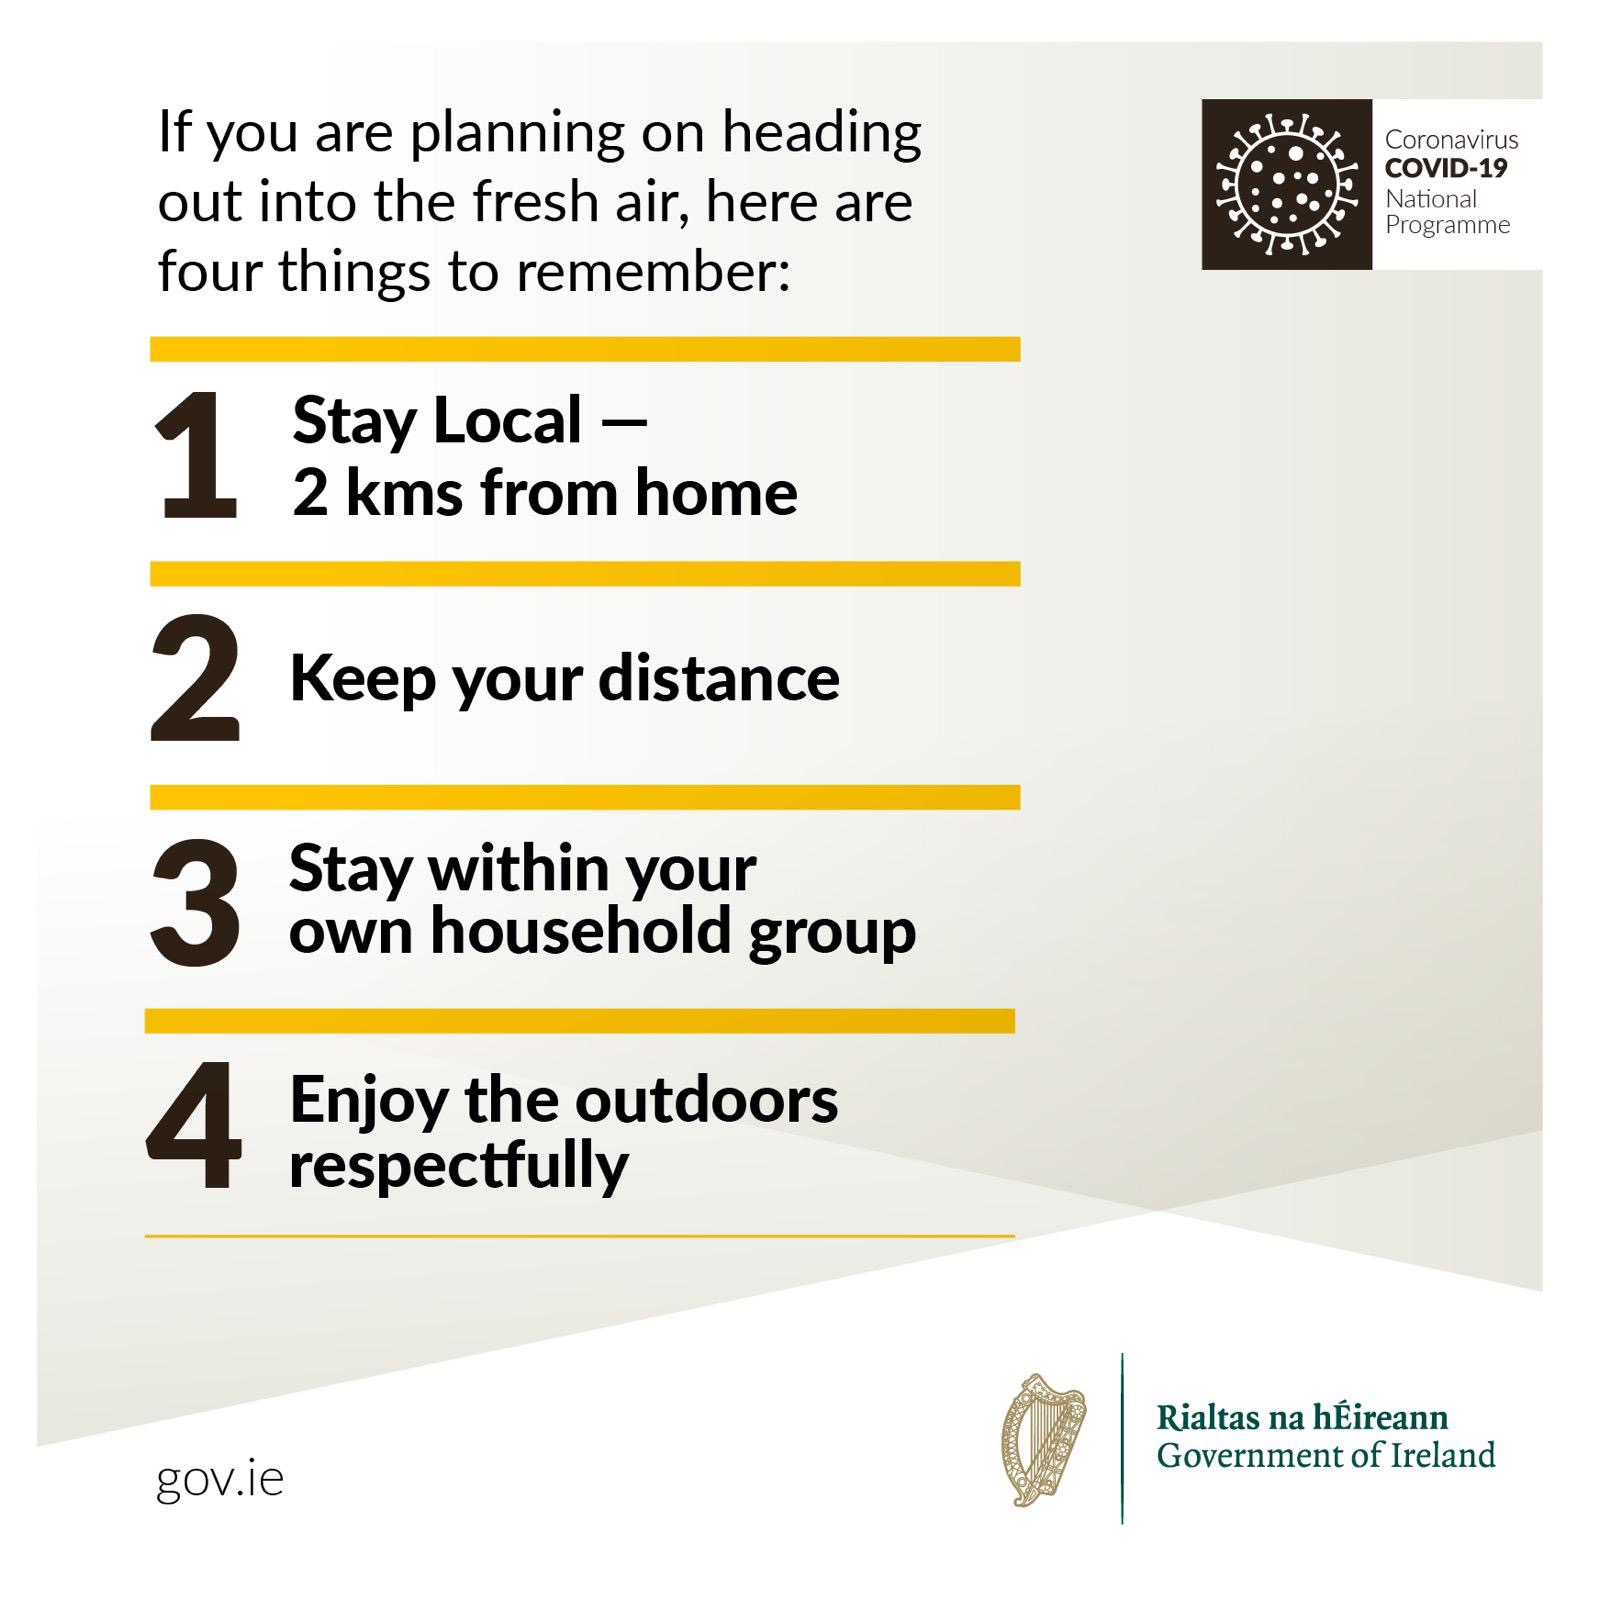 picture telling people to stay local, keep their distance, stay with your won group and use the outdoors respectfully during covid-19